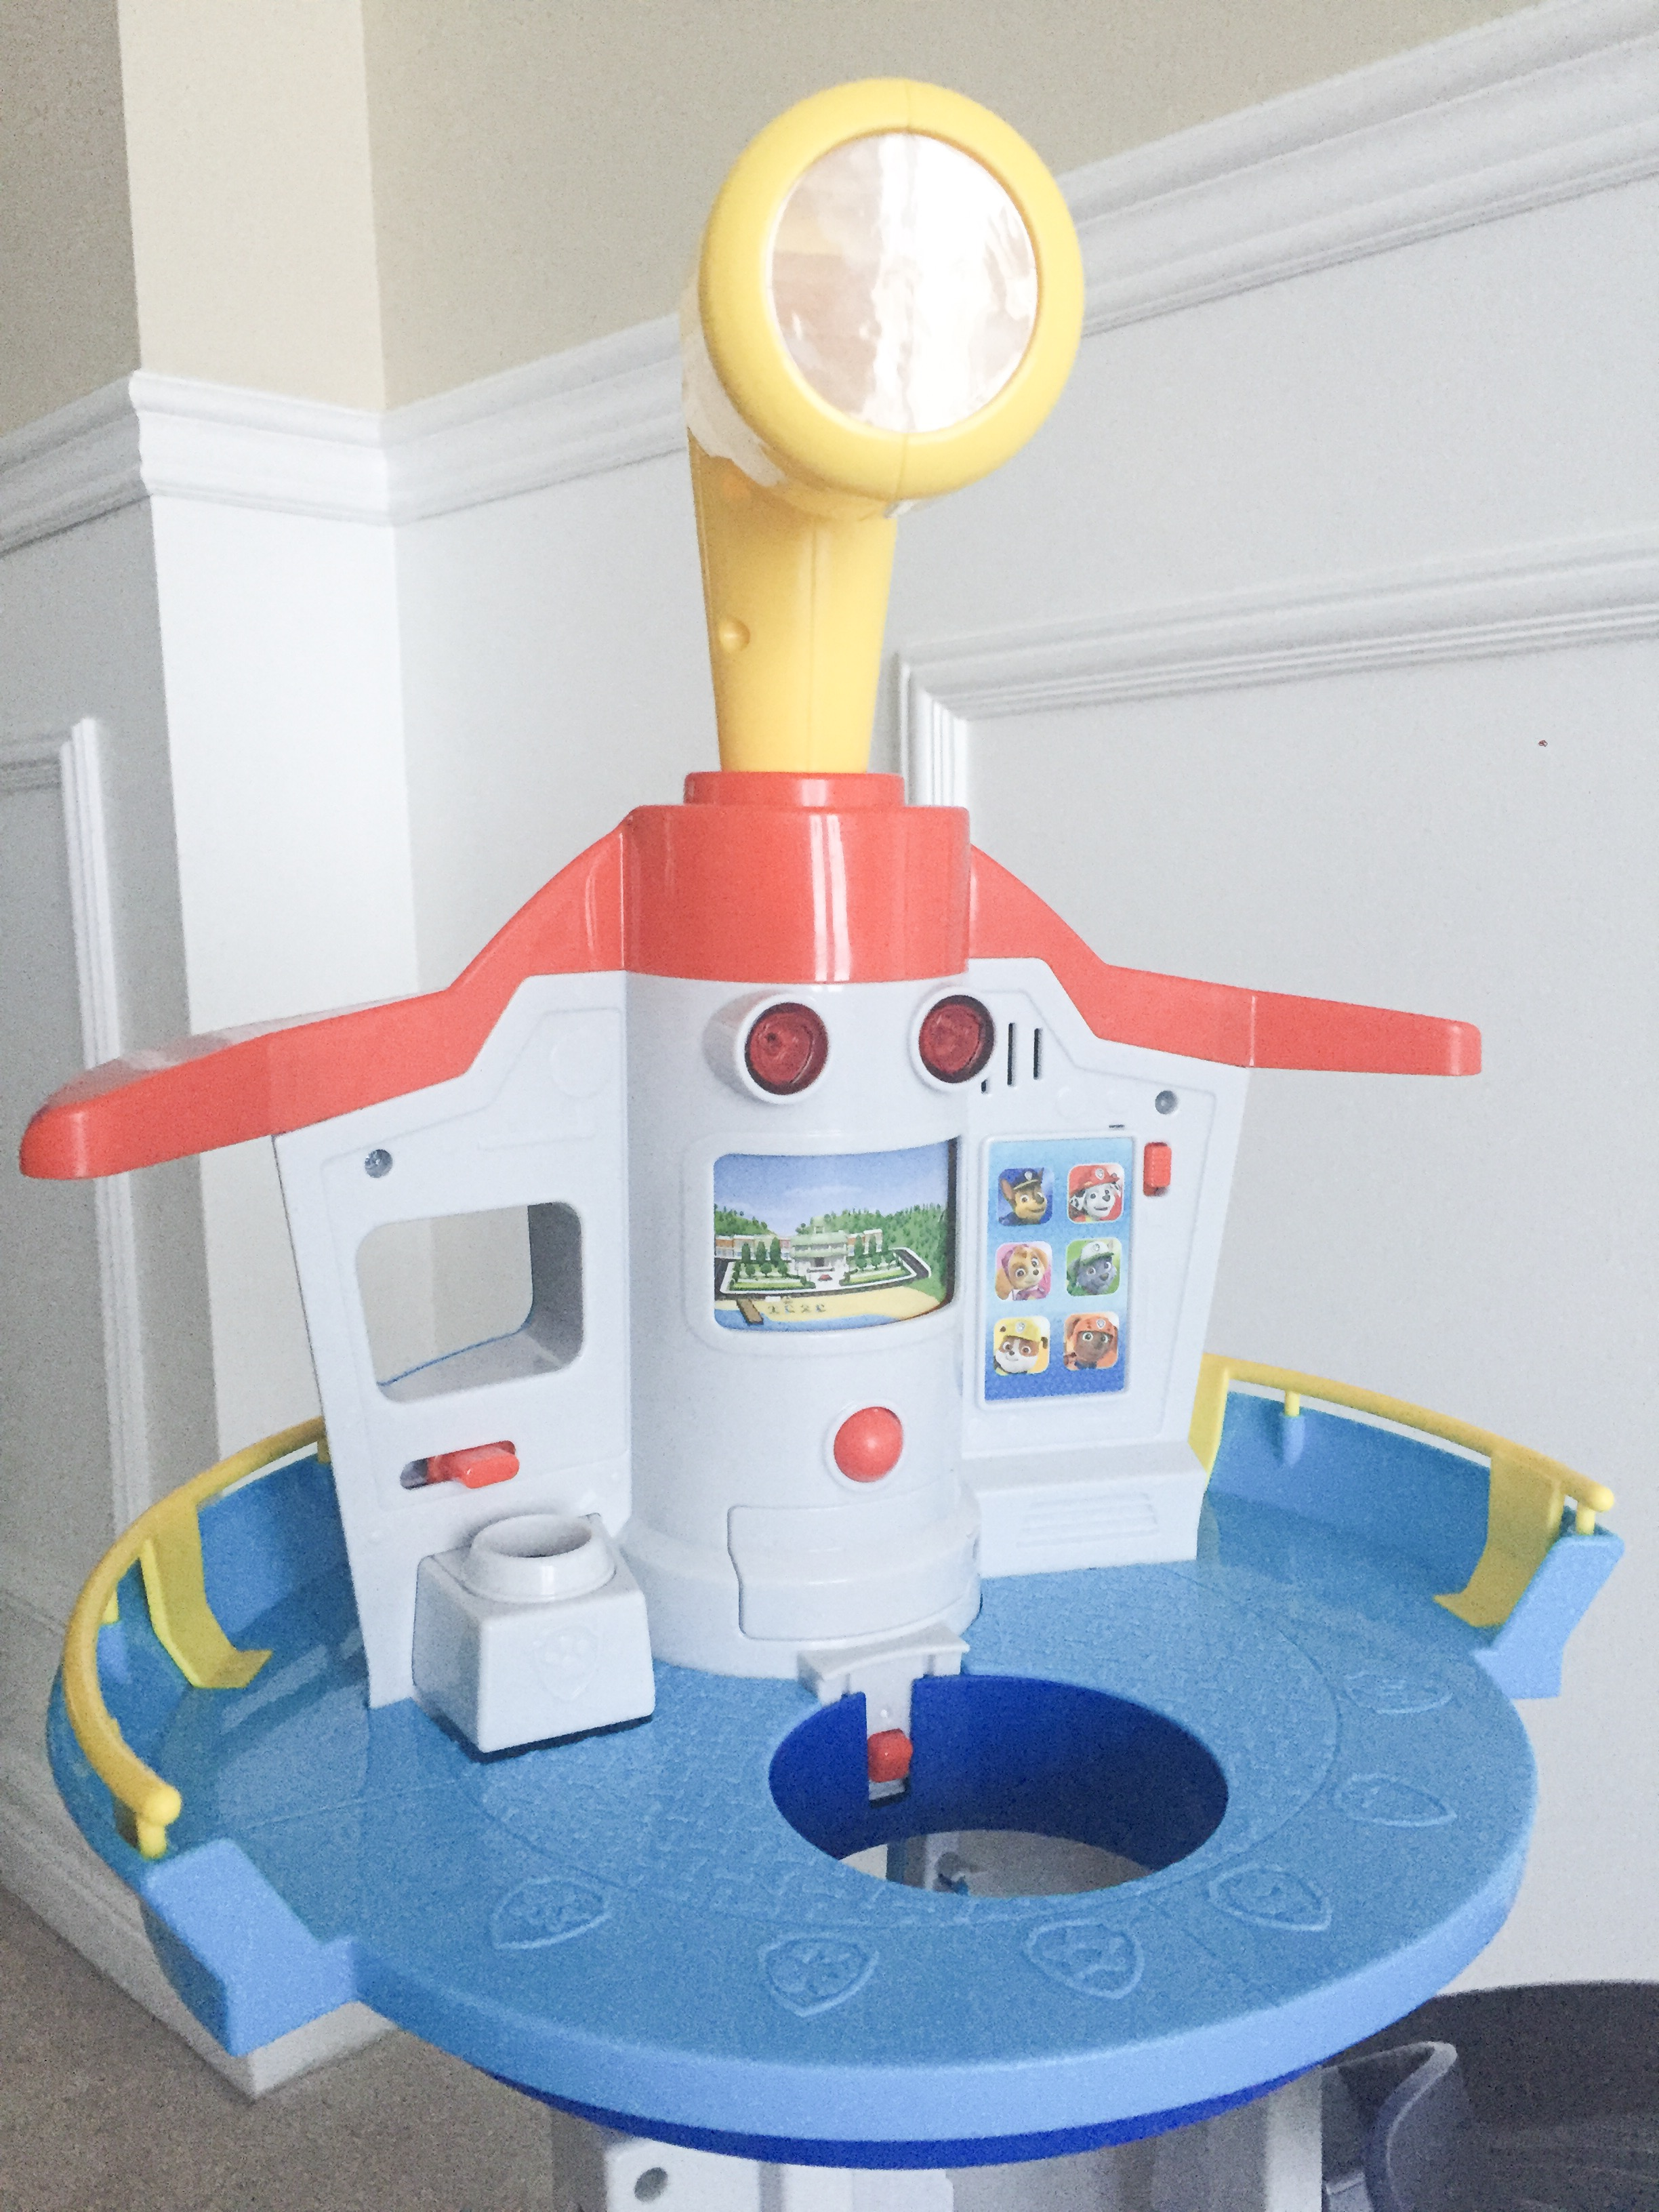 Review on the PAW Patrol My Size Lookout tower from Spinmaster